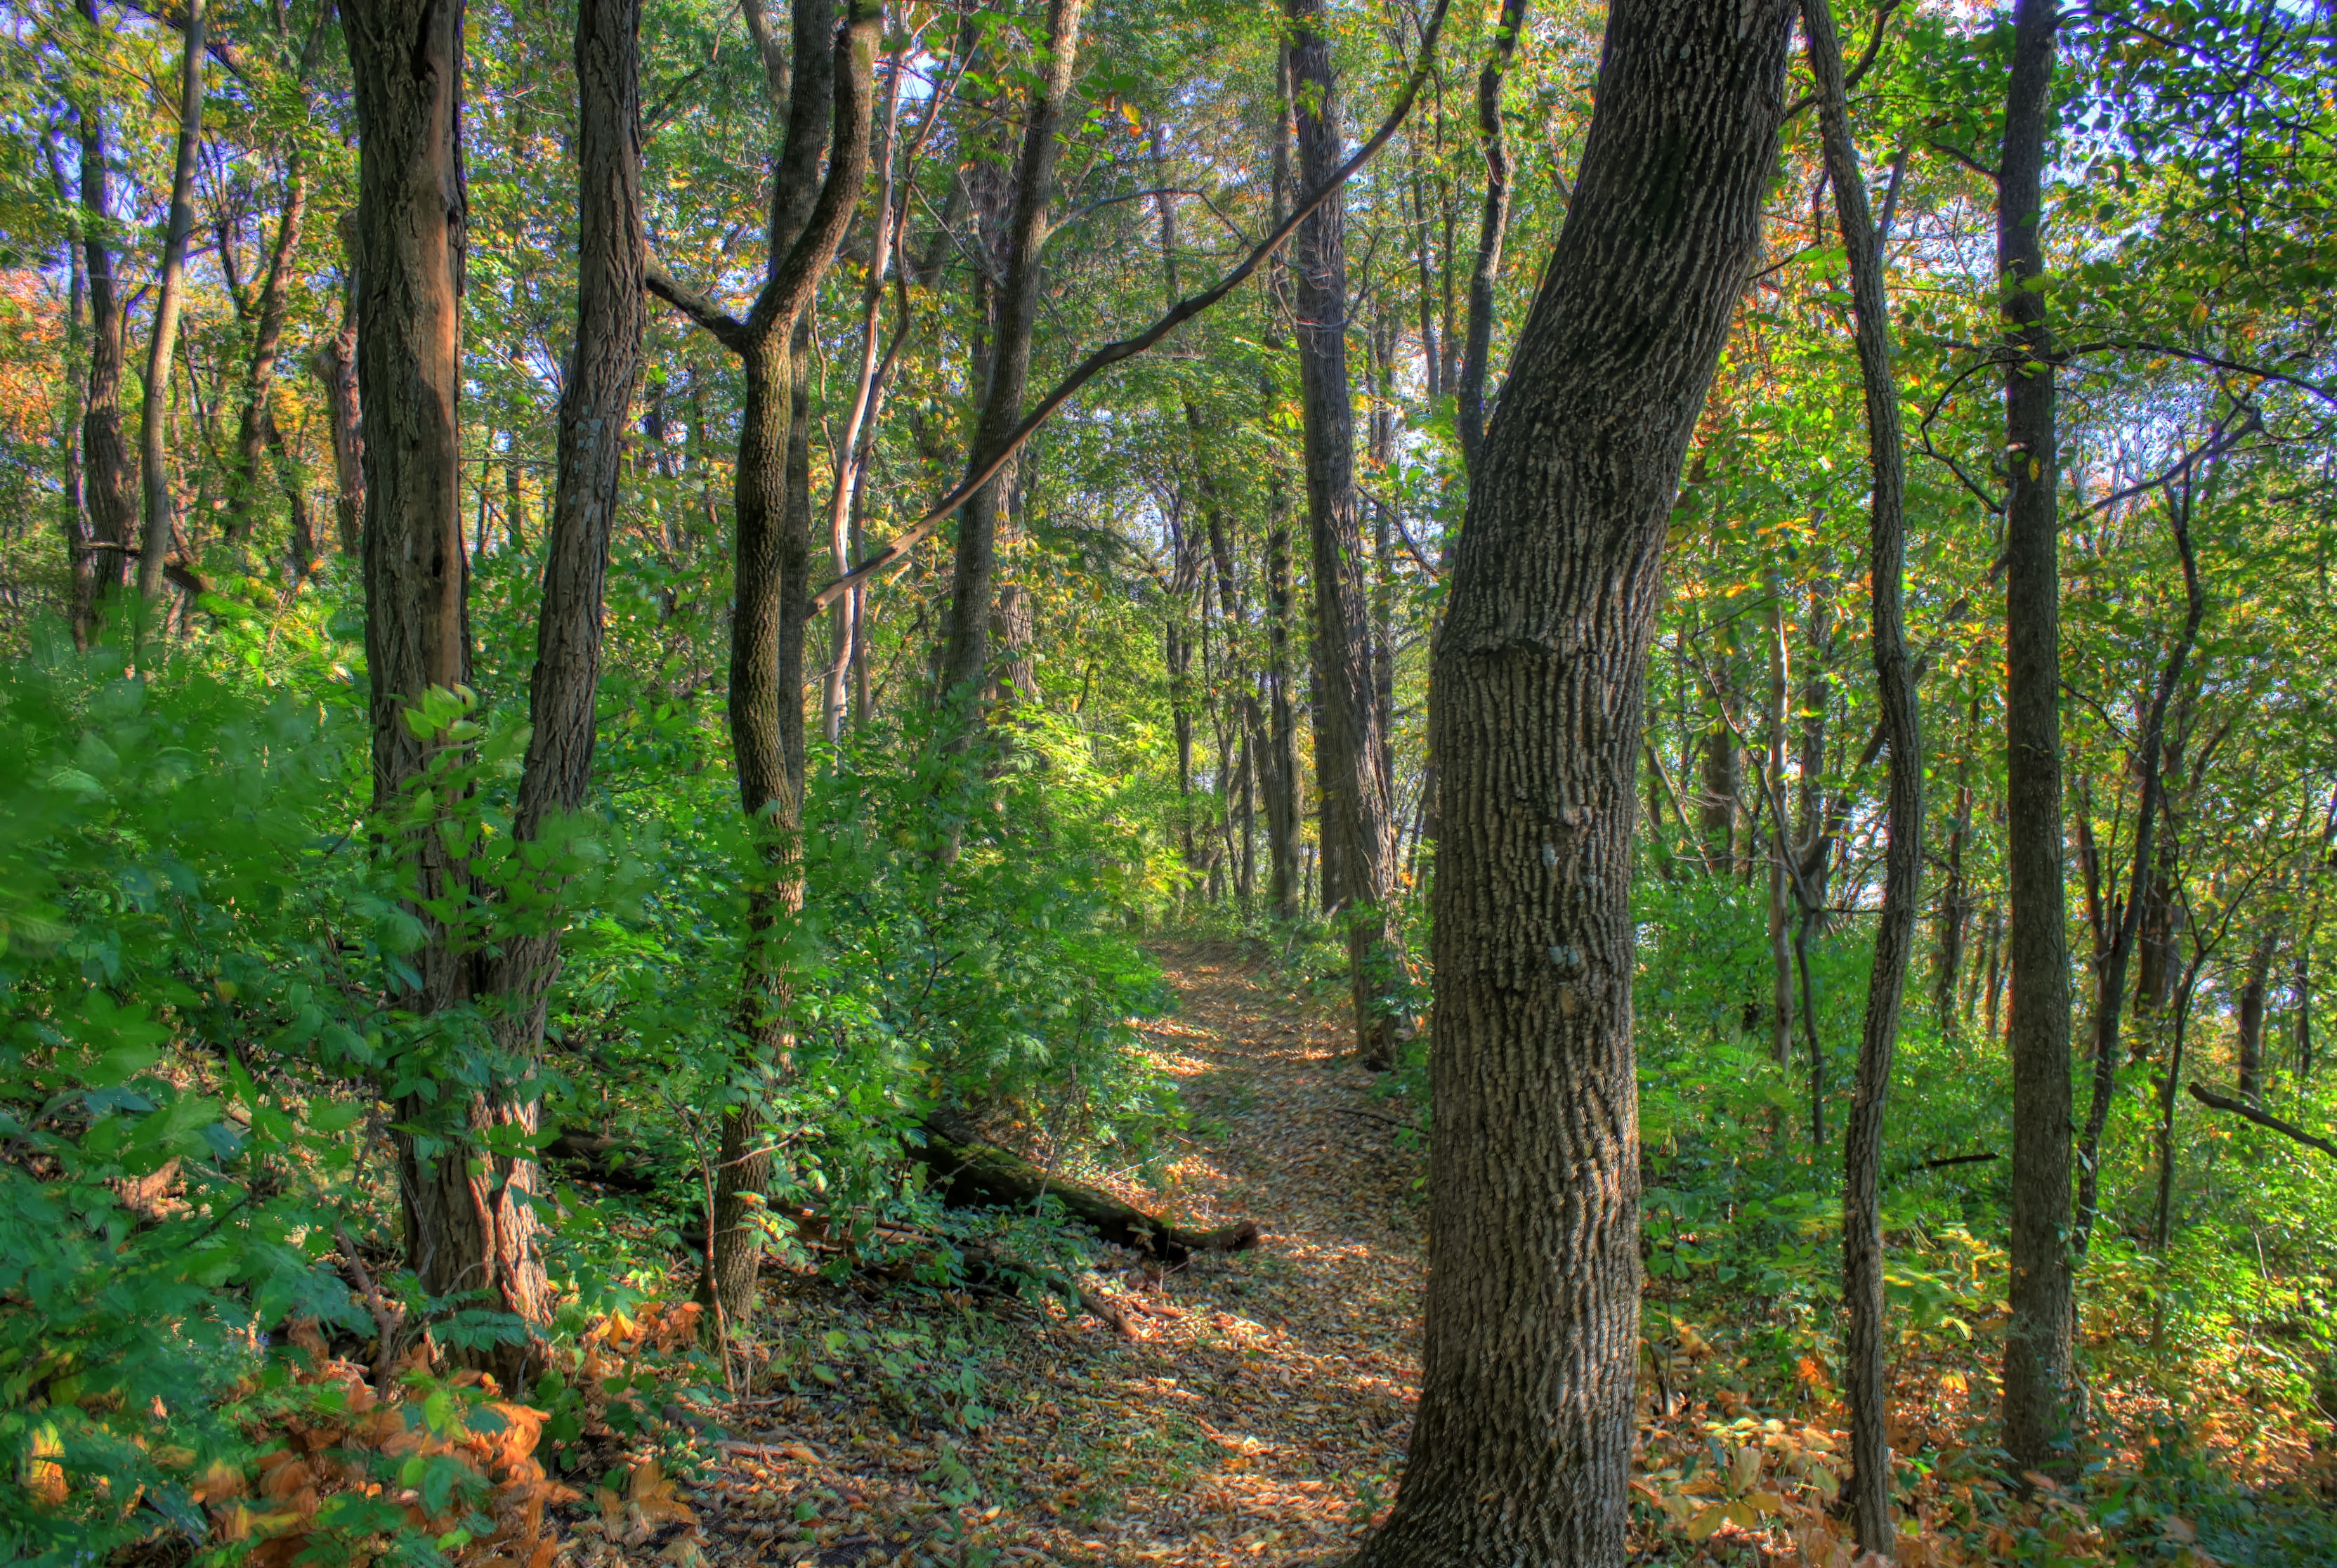 Wisconsin northwoods, where specifiers relax and innovate